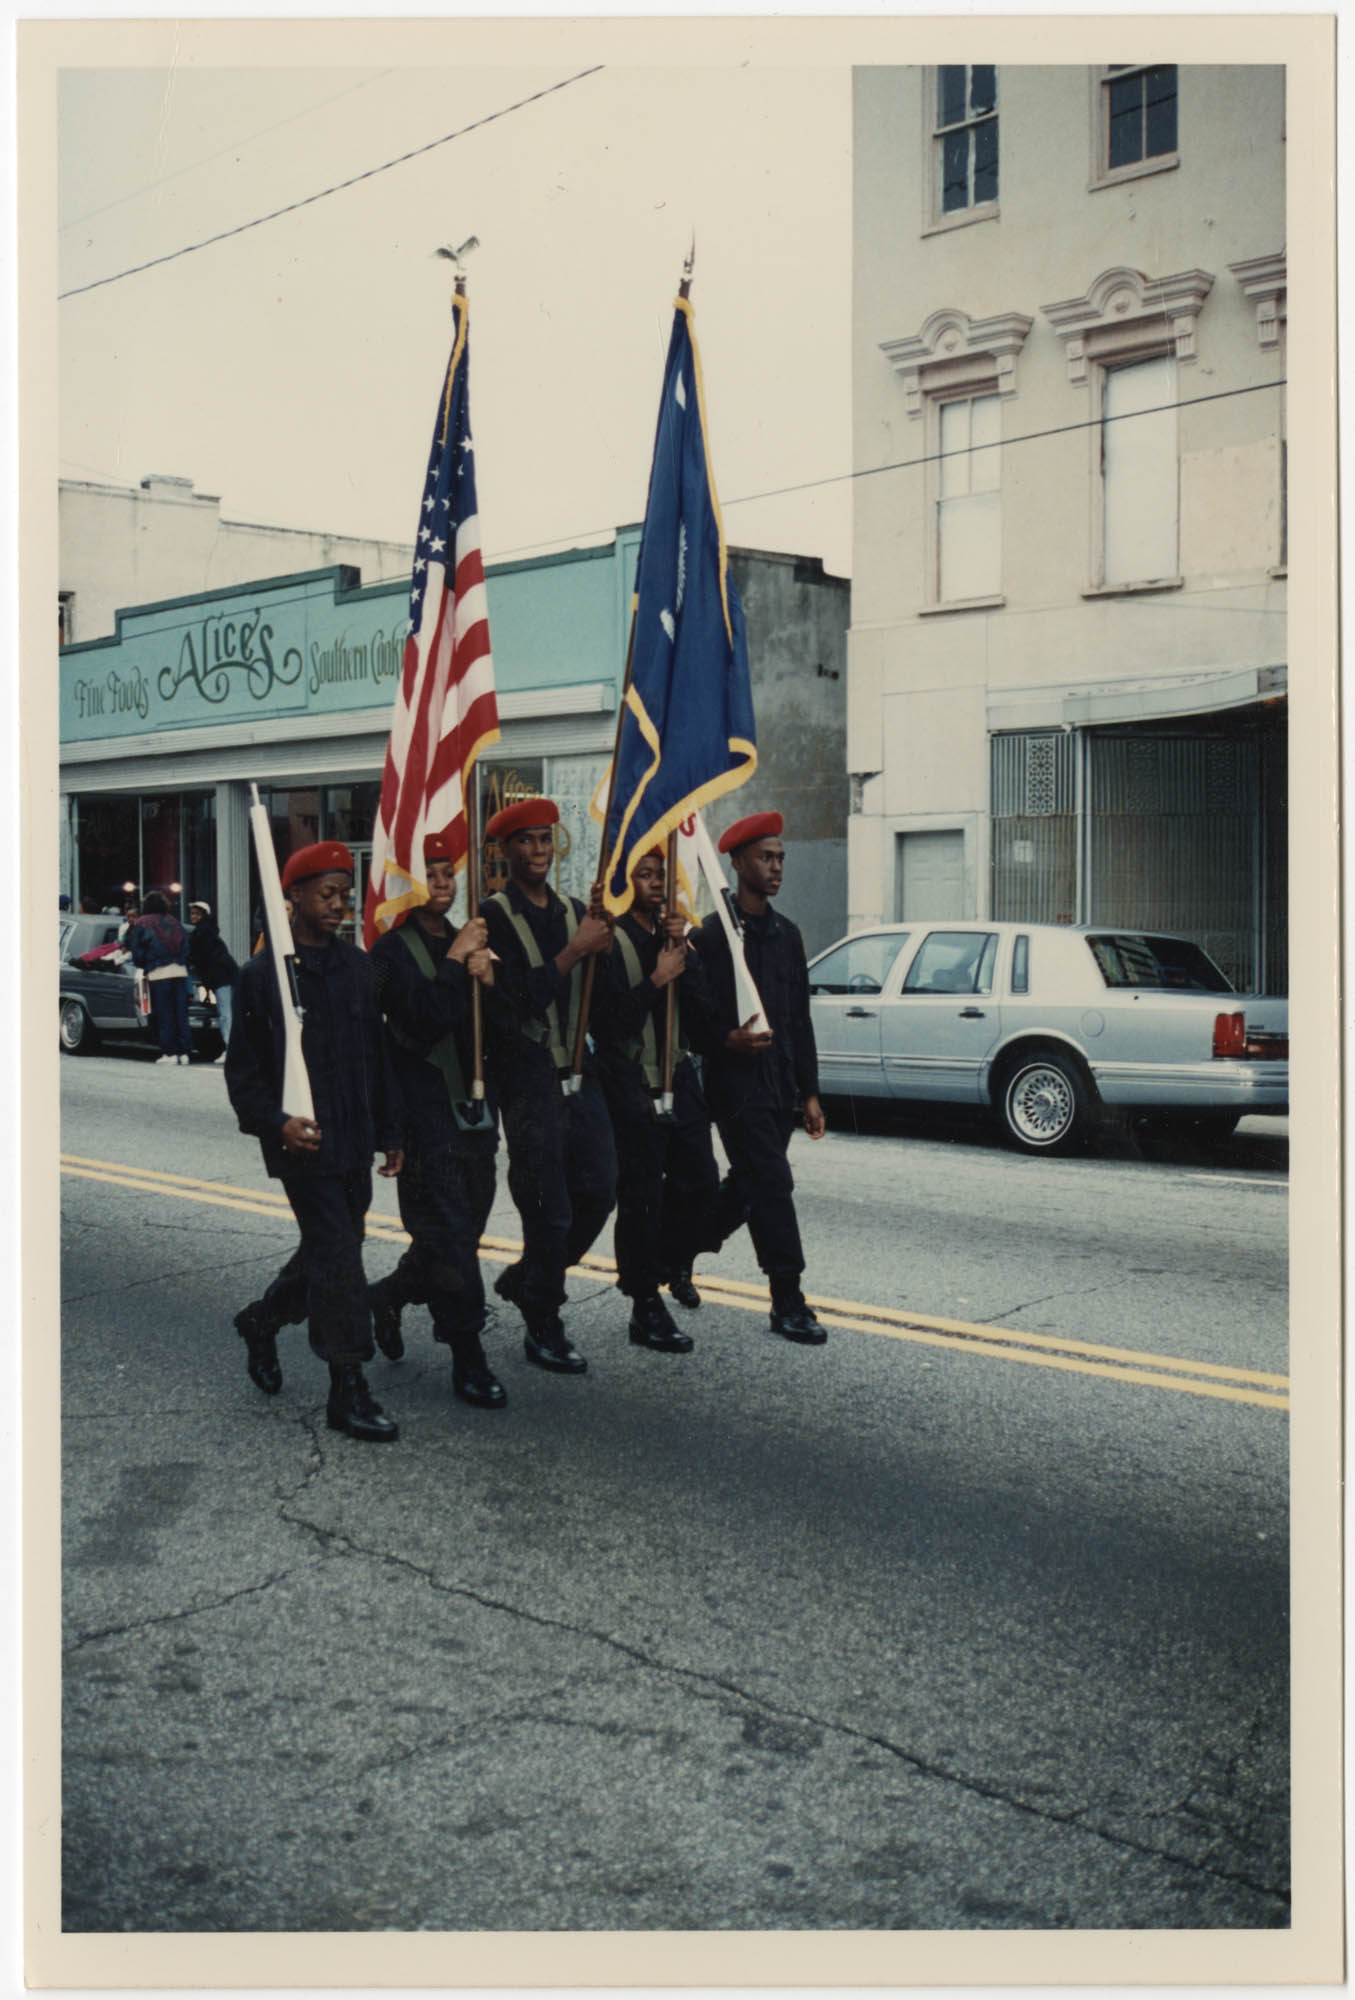 Photograph of Five Young Men Marching in a Parade